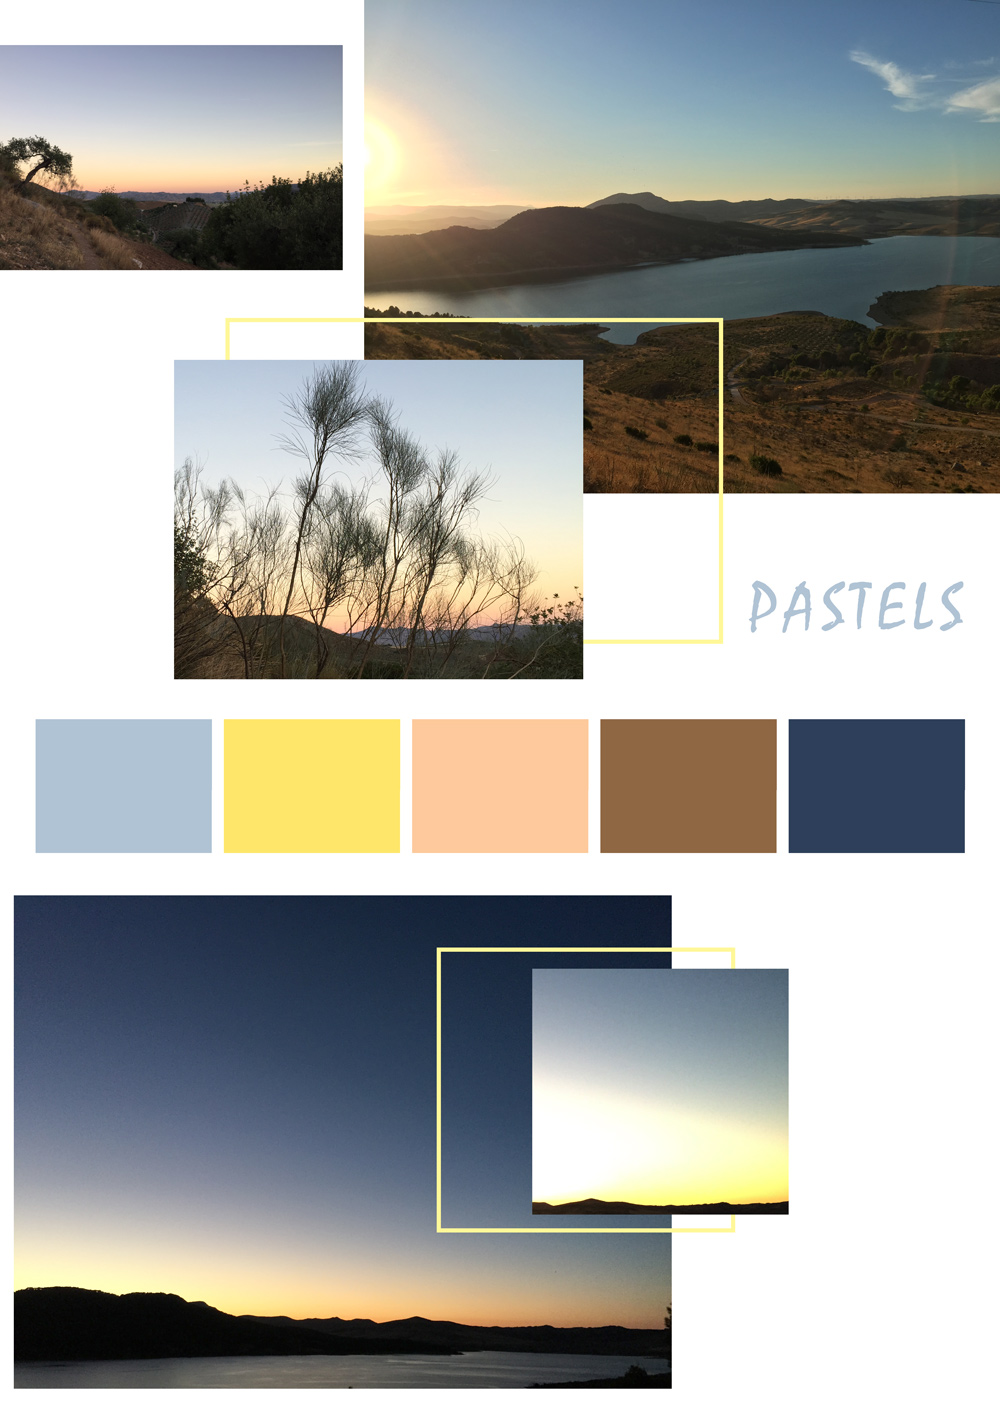 Pastell Farben in Andalusien